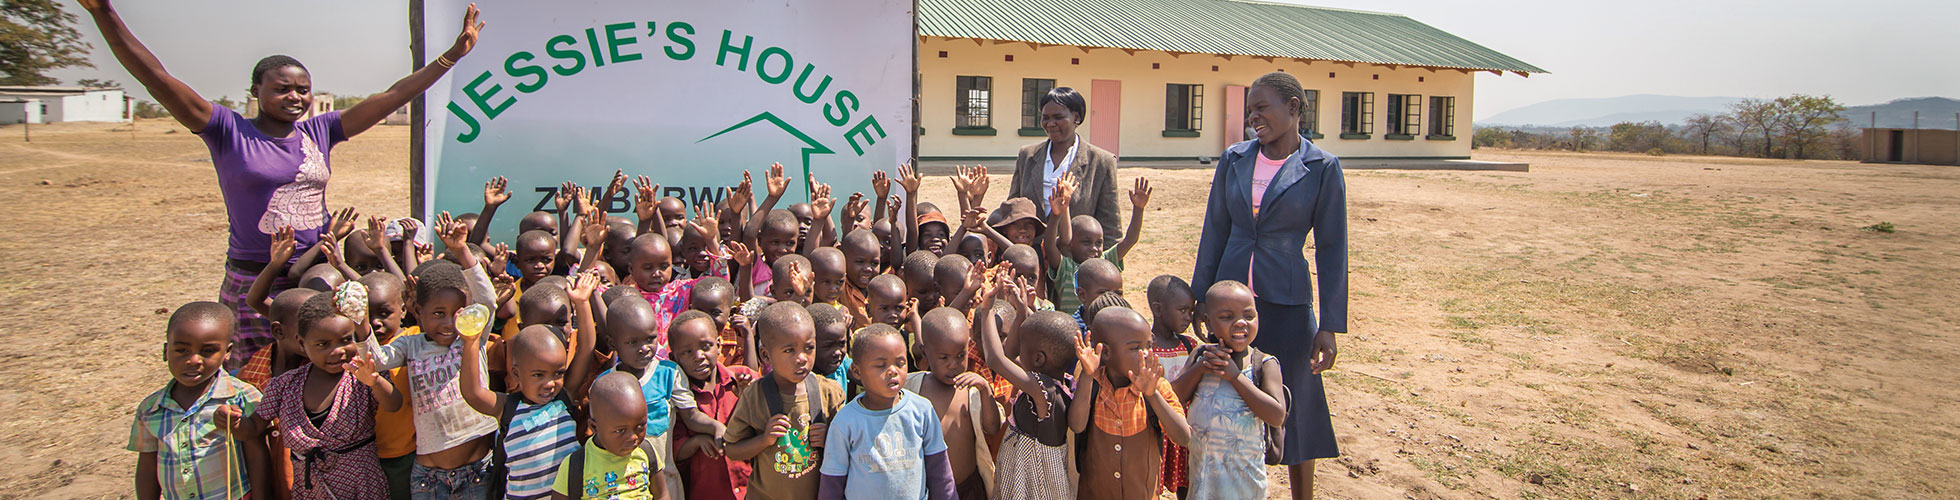 Children at Jessies House in Zimbabwe